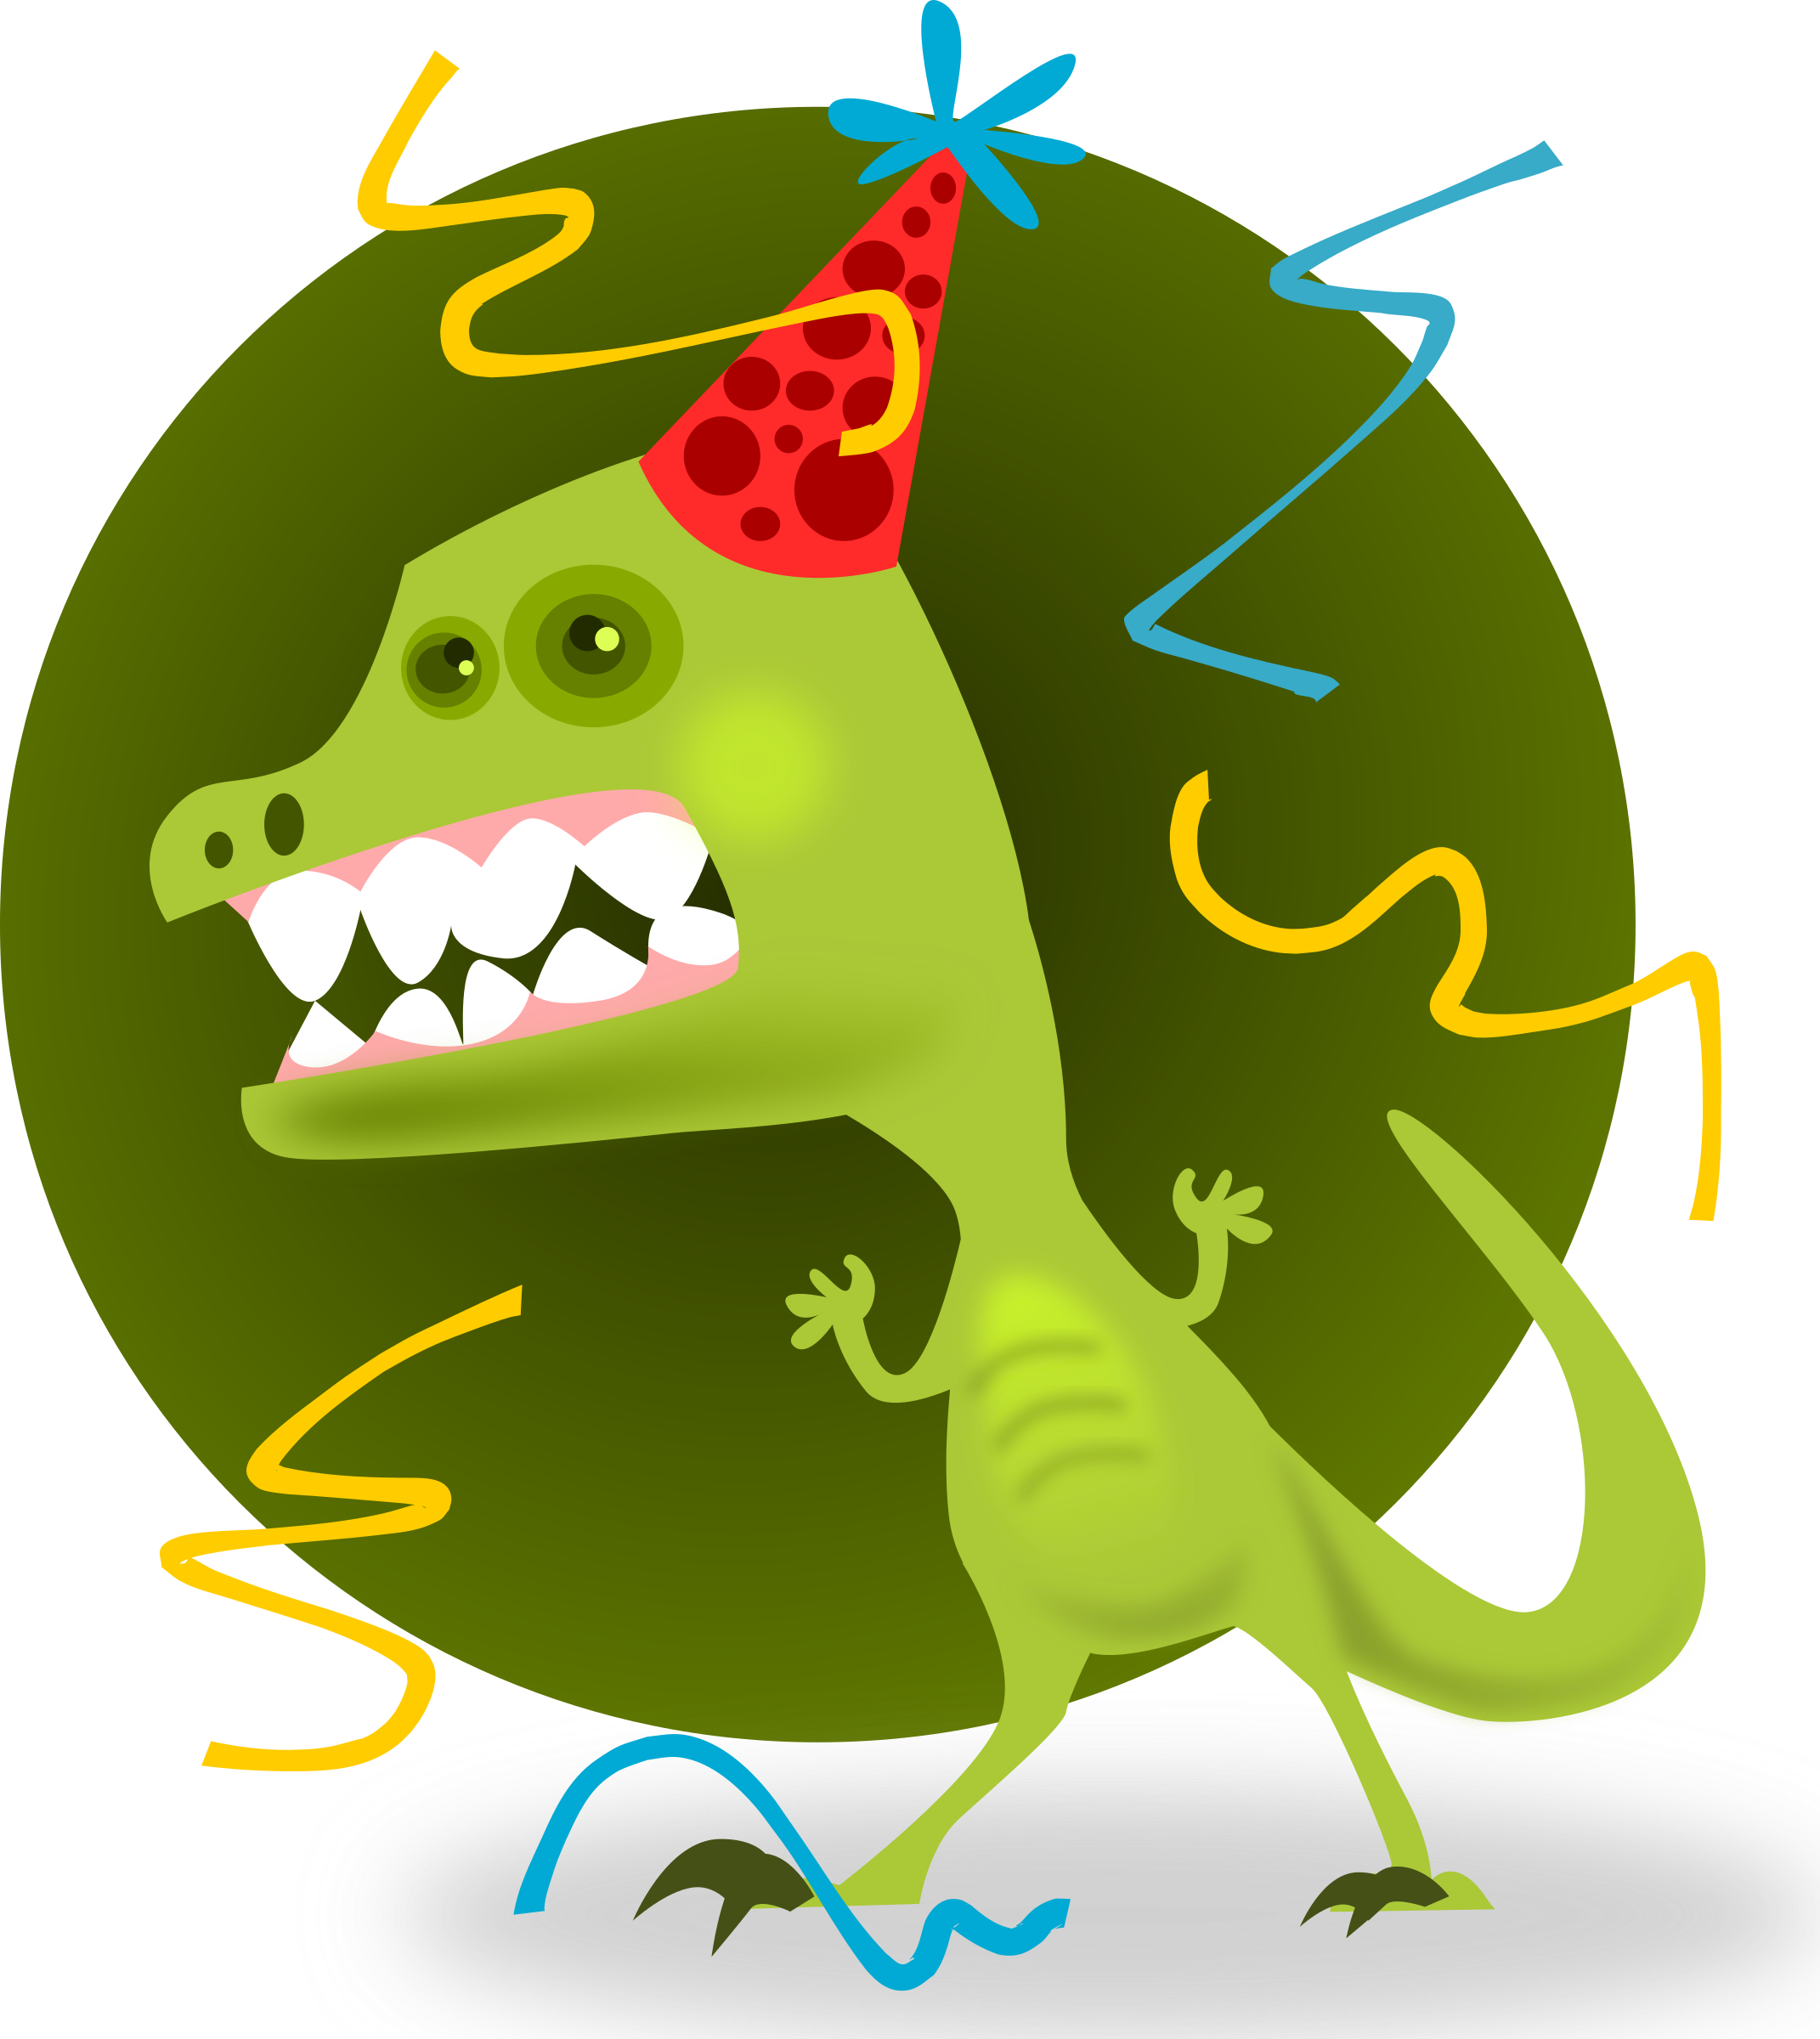 Animal big image png. Dinosaur clipart party